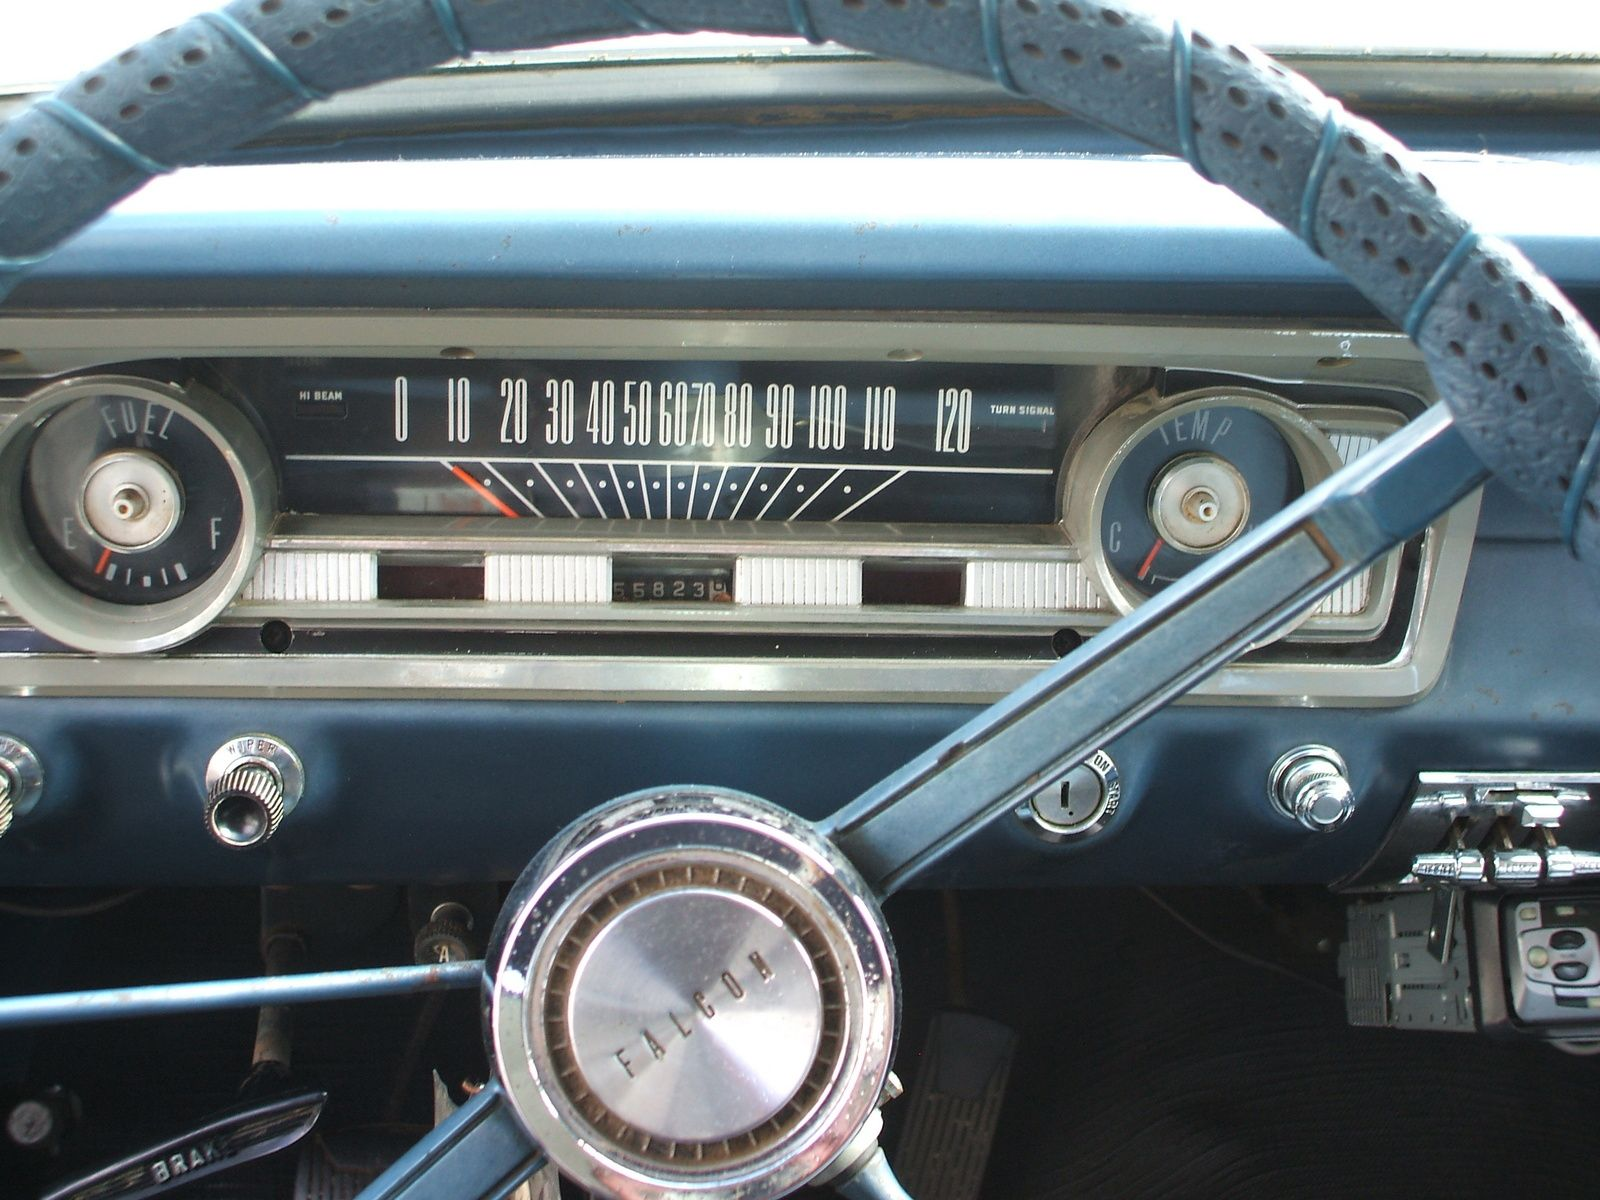 1965 ford falcon for sale on craigslist 2013 | Ford Falcon Interior